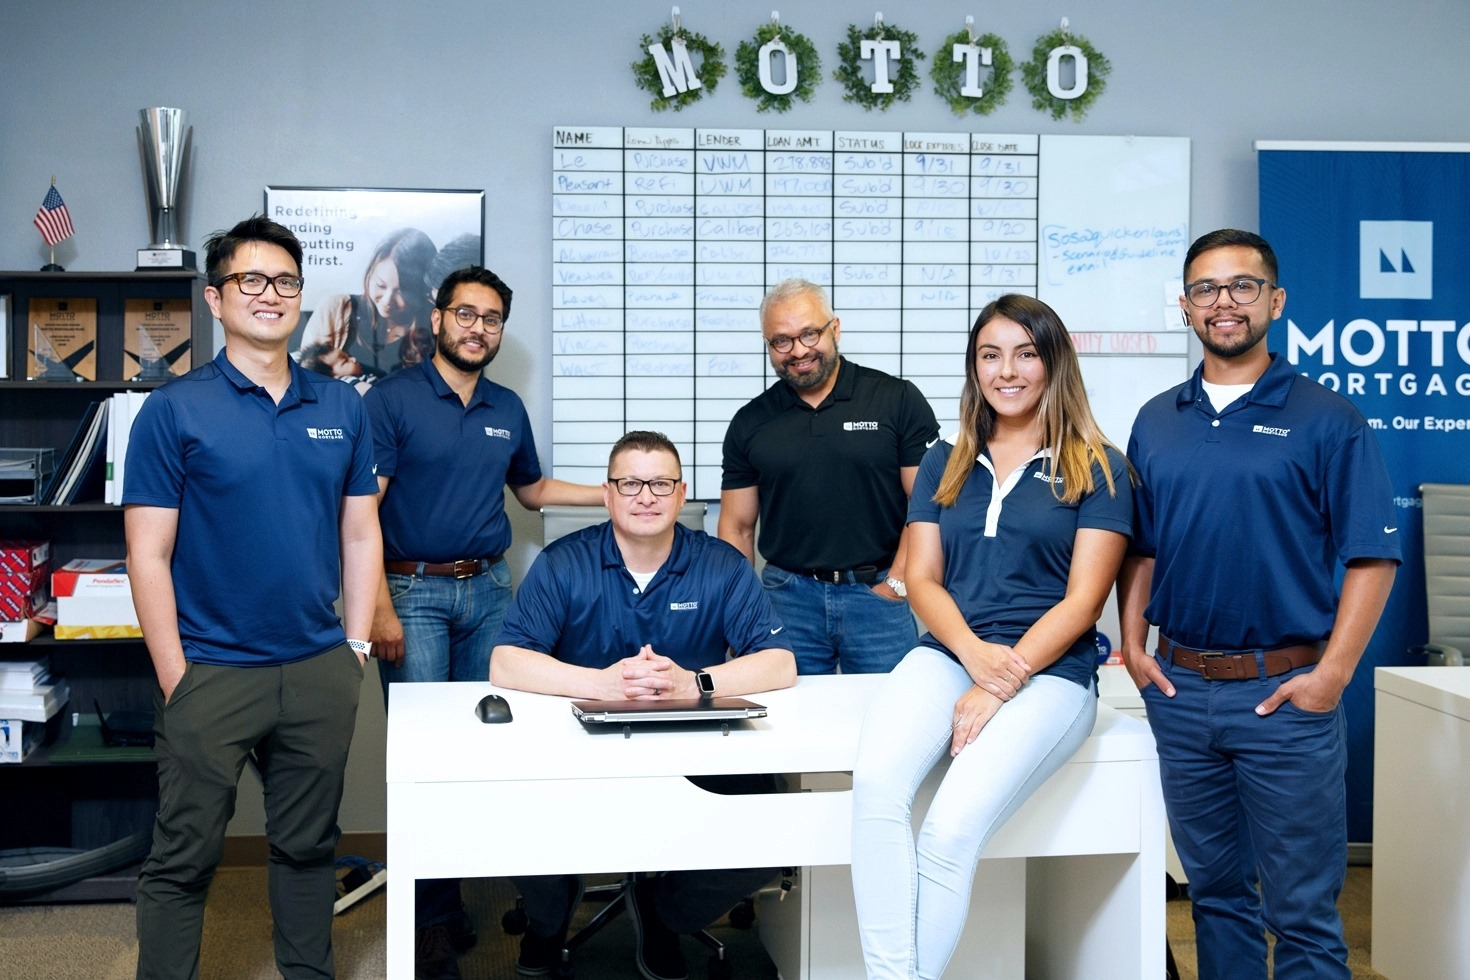 Motto Mortgage Plus Mortgage Experts